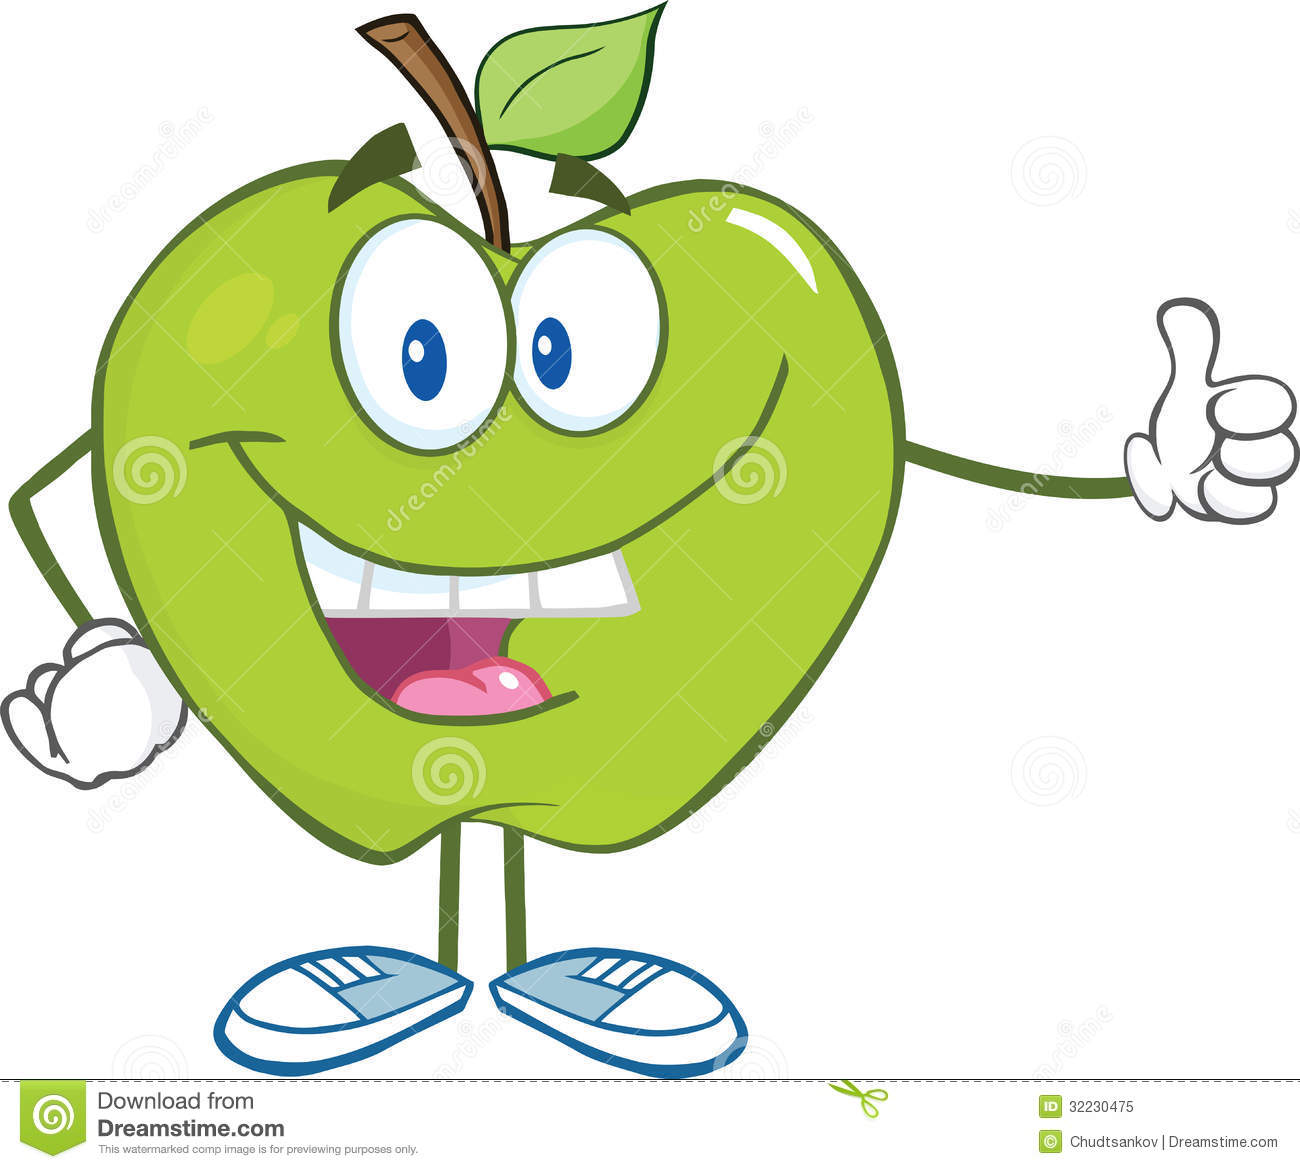 Cartoon Characters Green : Green apple cartoon character holding a thumb up royalty